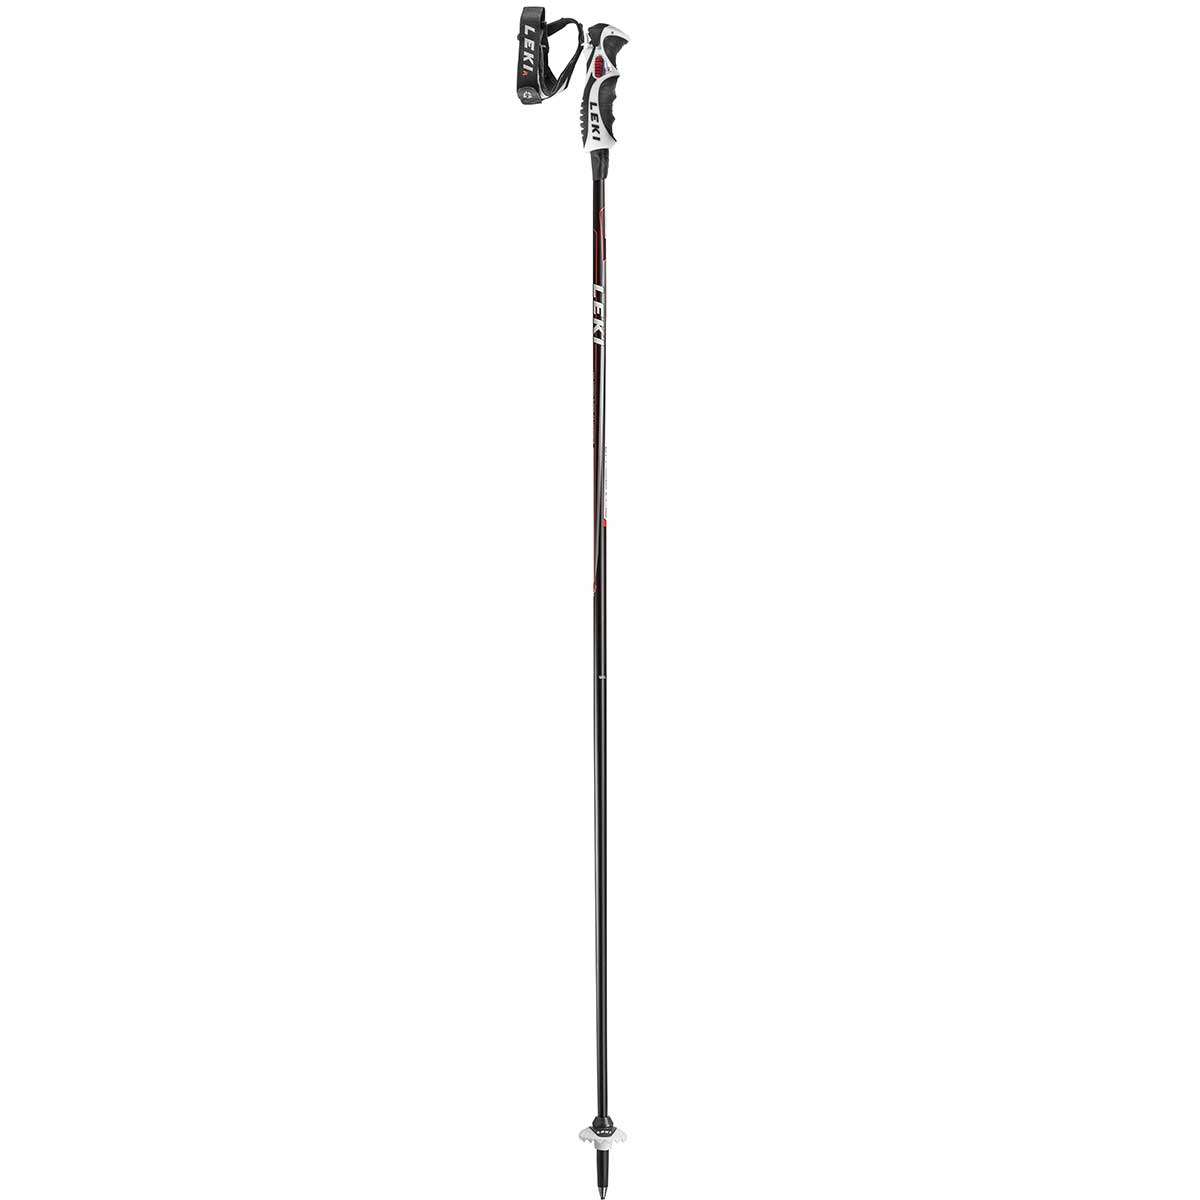 Leki Carbon 14S ski pole in red